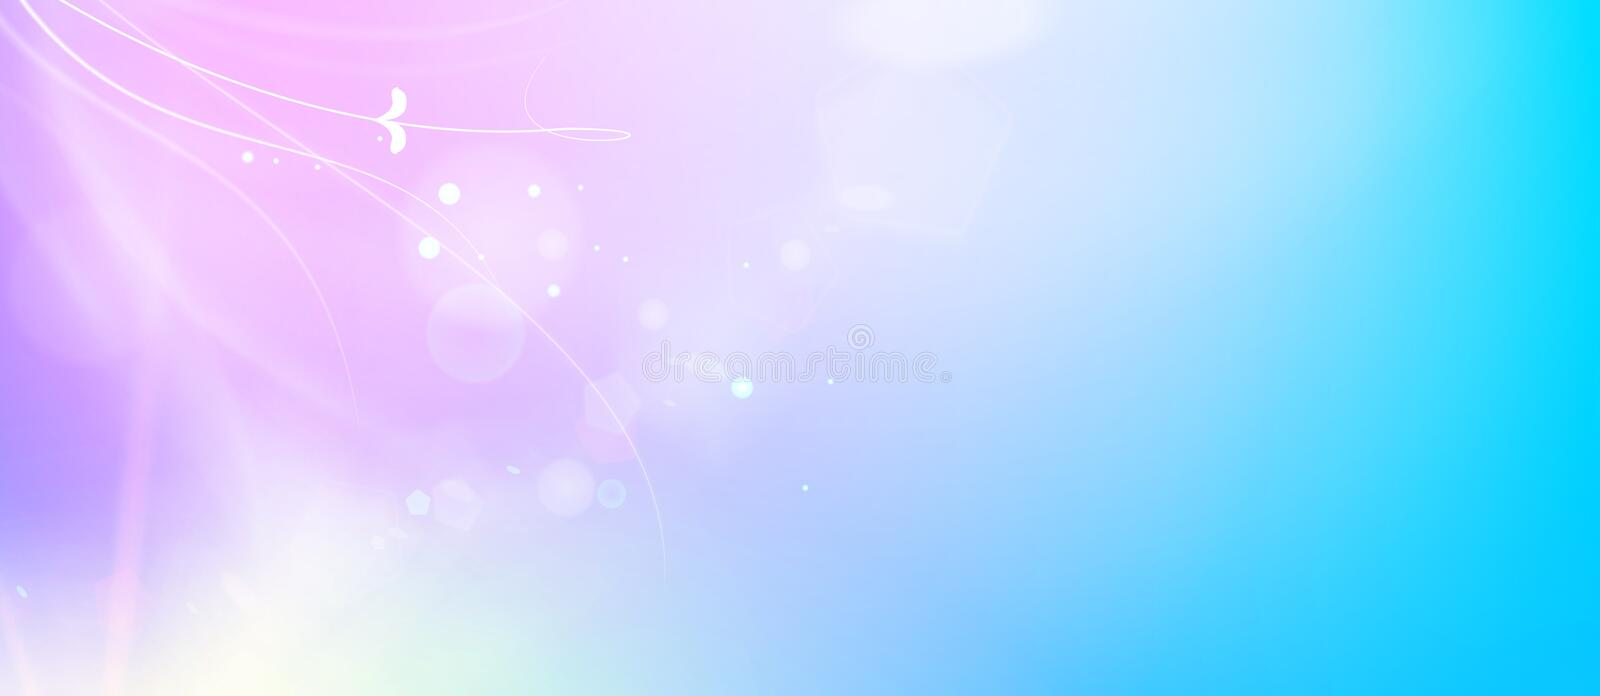 Abstract smooth blue lines and shining purple flow of the magic background. Bright sparks over deep violet space vector illustration